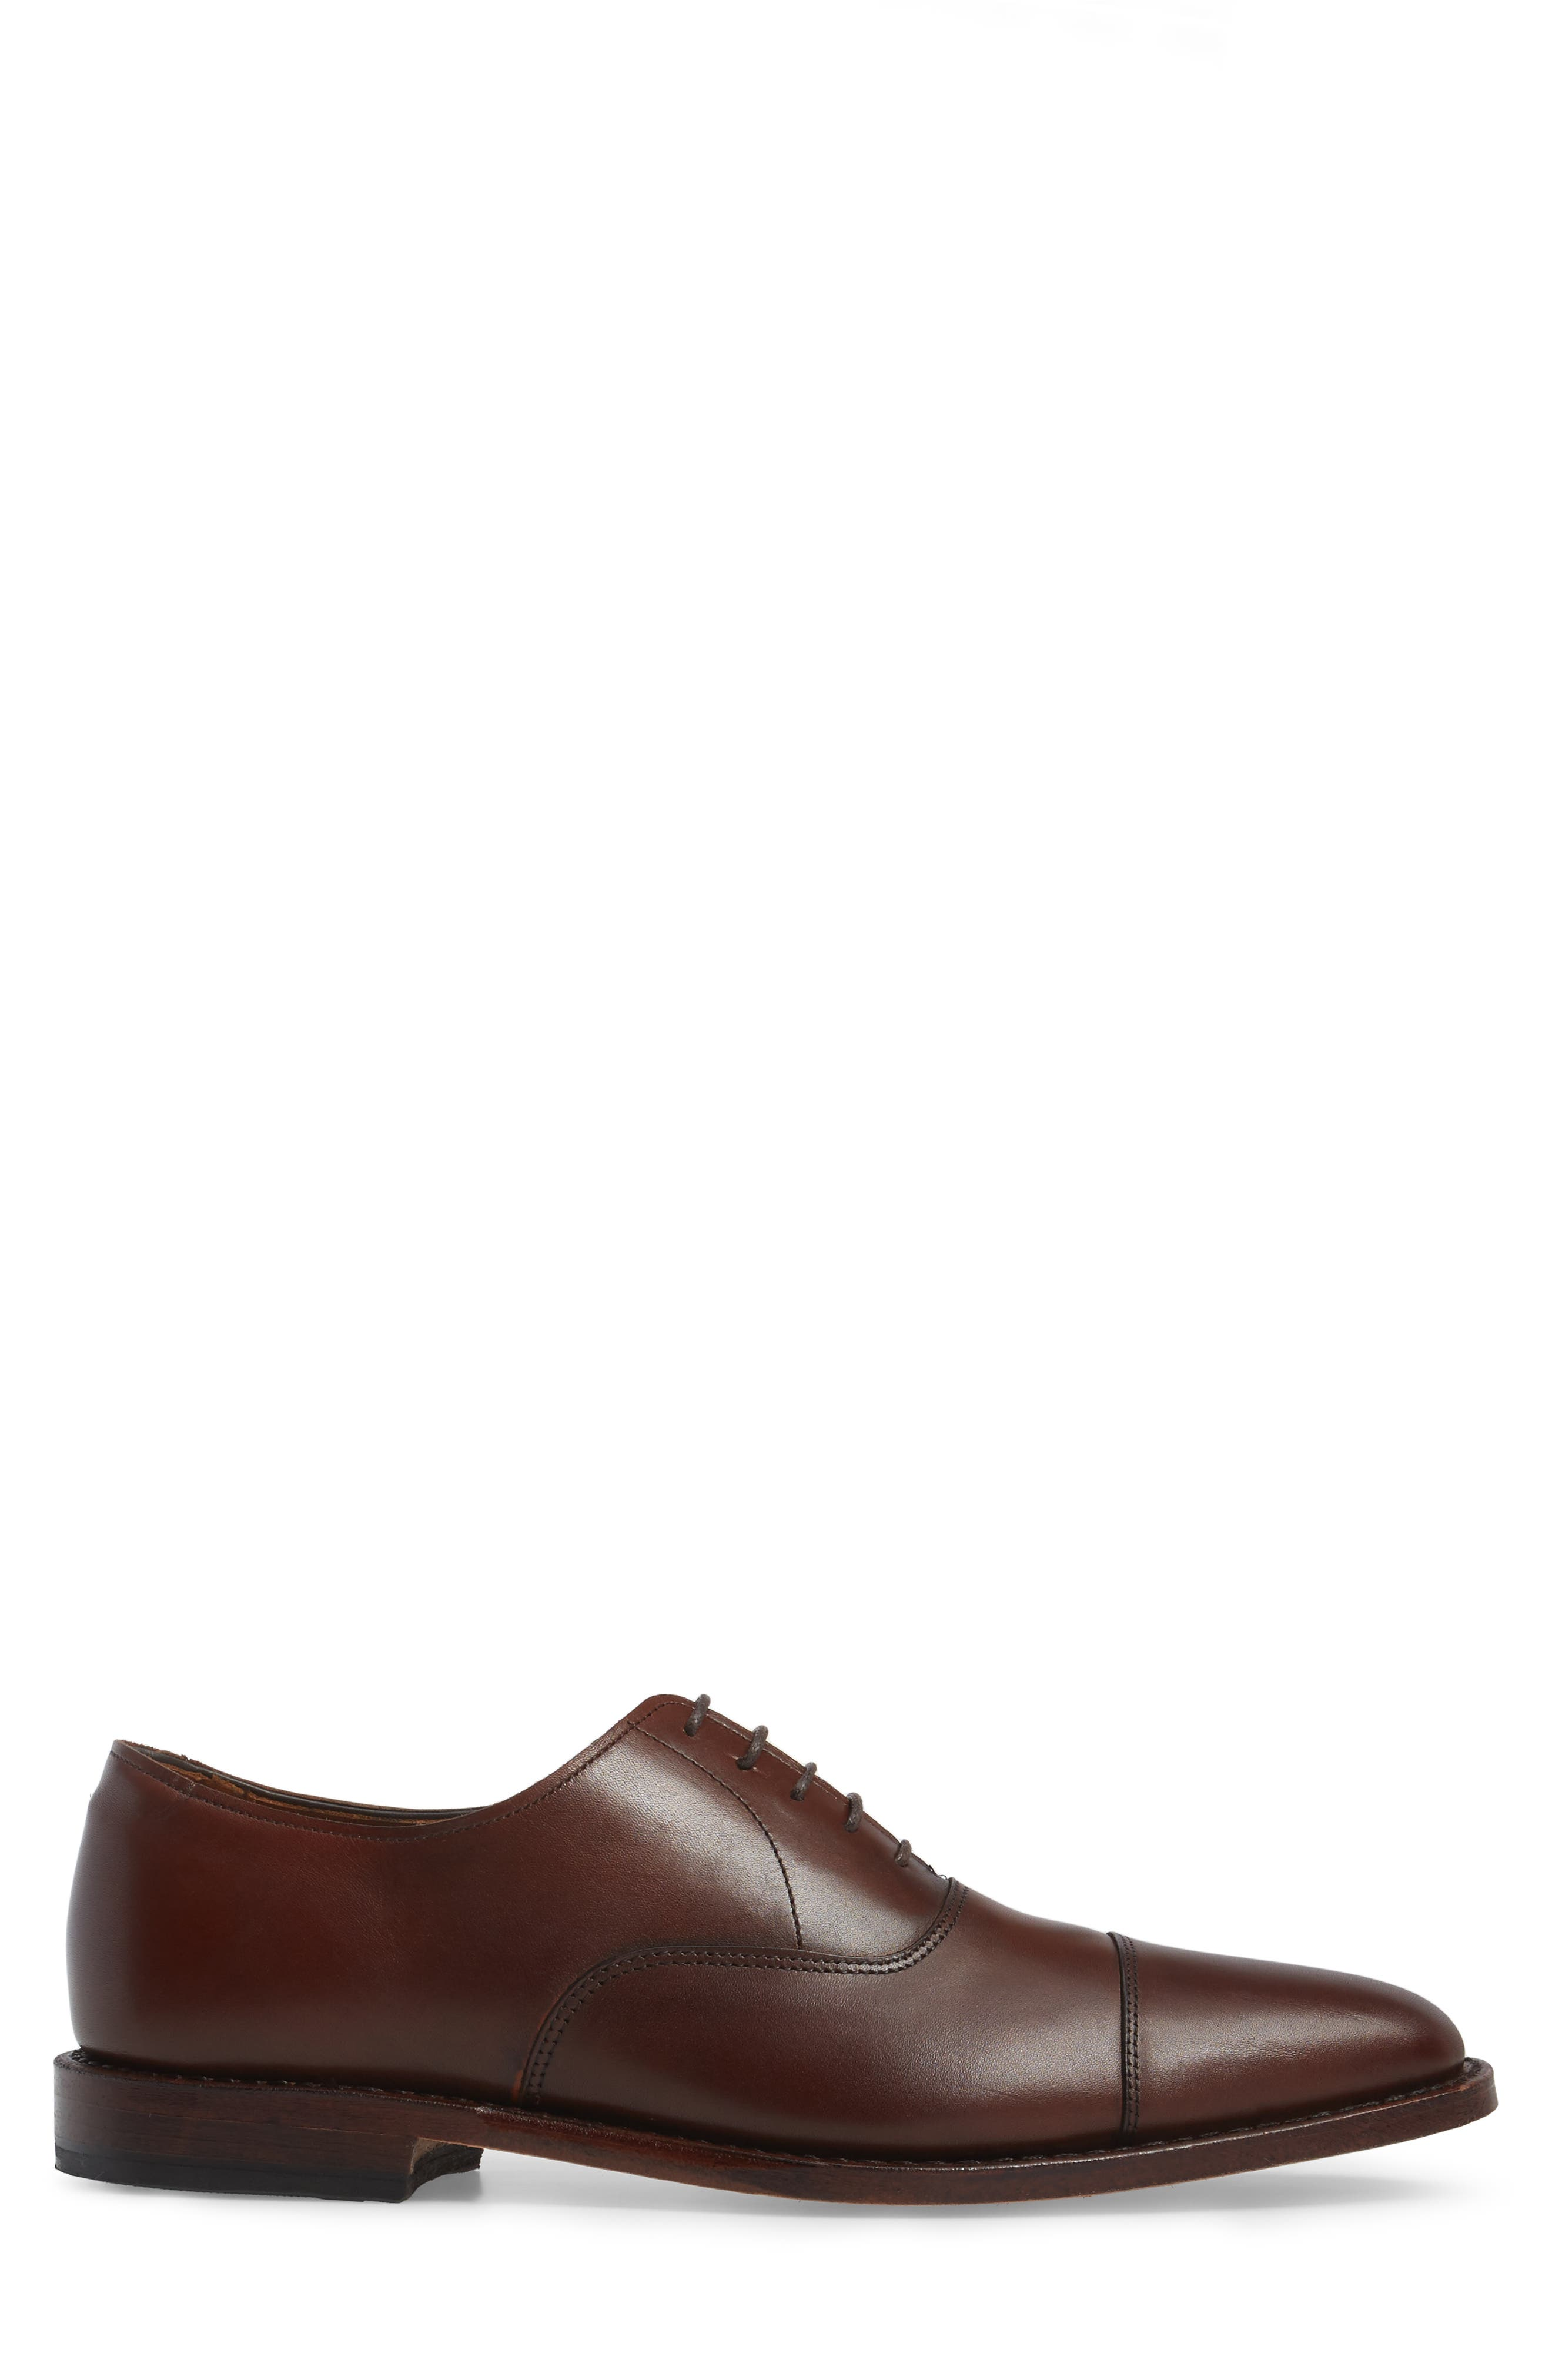 'Exchange Place' Cap Toe Oxford,                             Alternate thumbnail 3, color,                             Dark Chili Leather